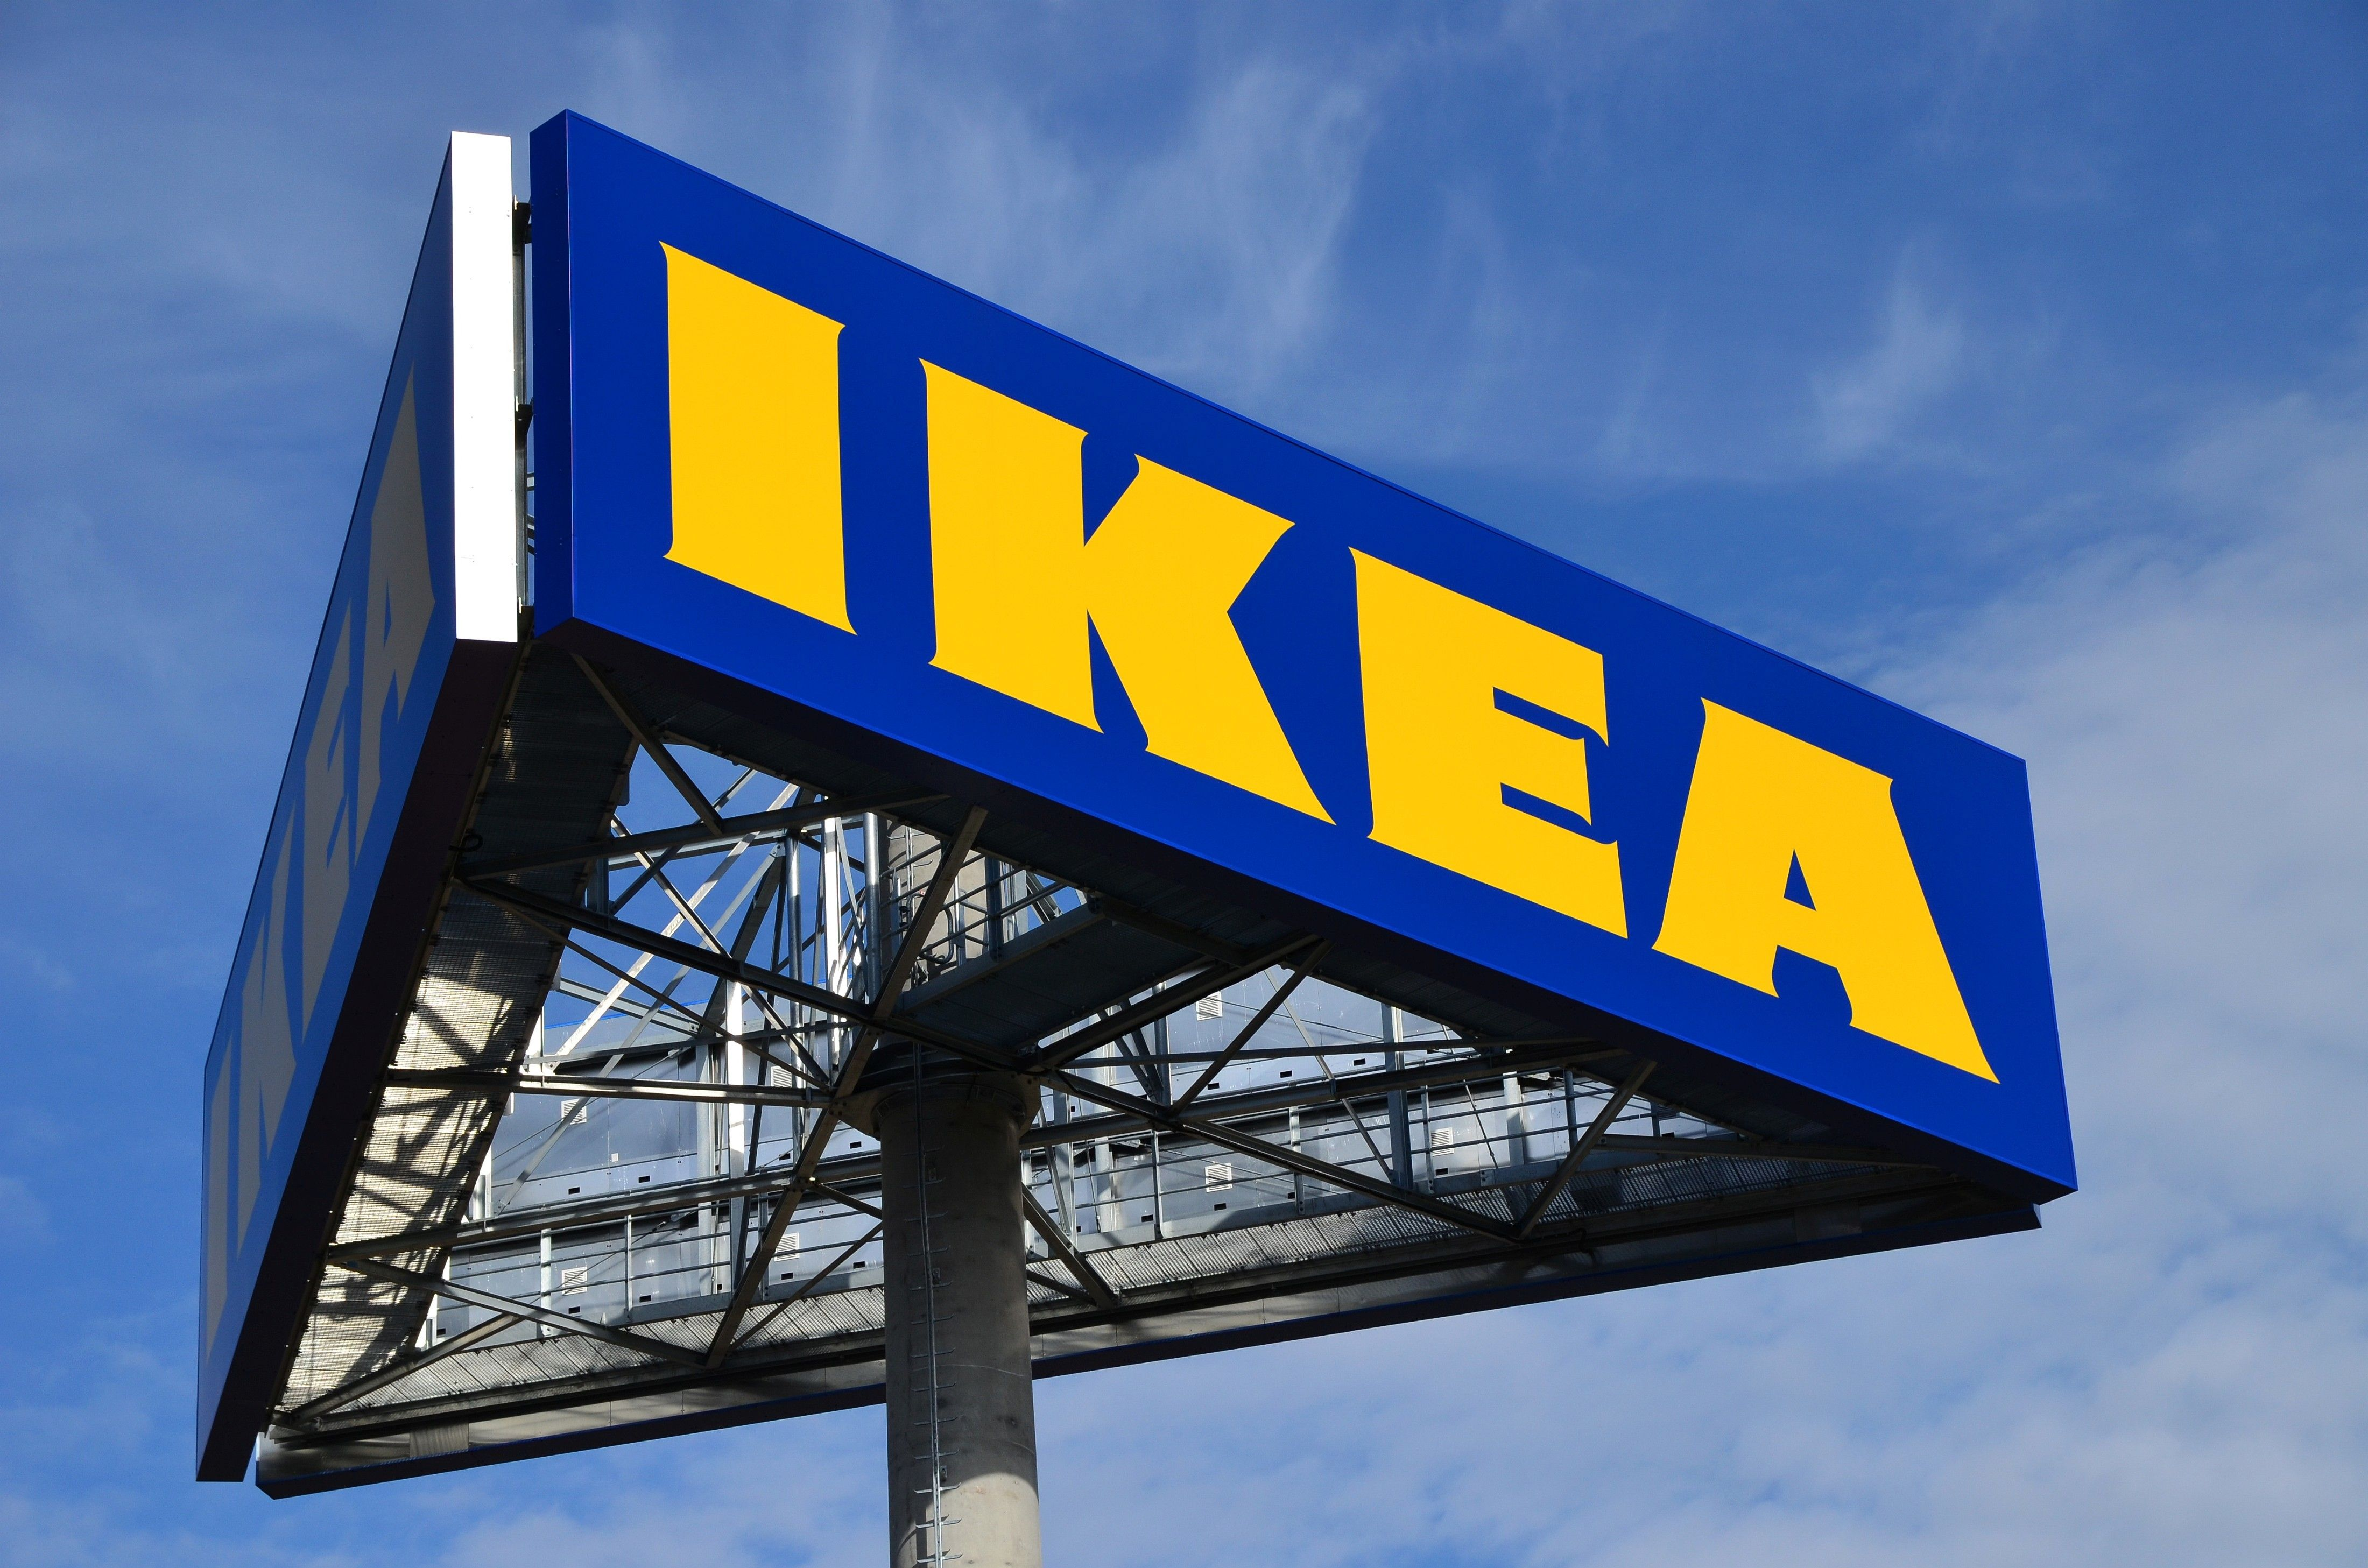 Ikea will build around 400 affordable houses in three UK towns next year